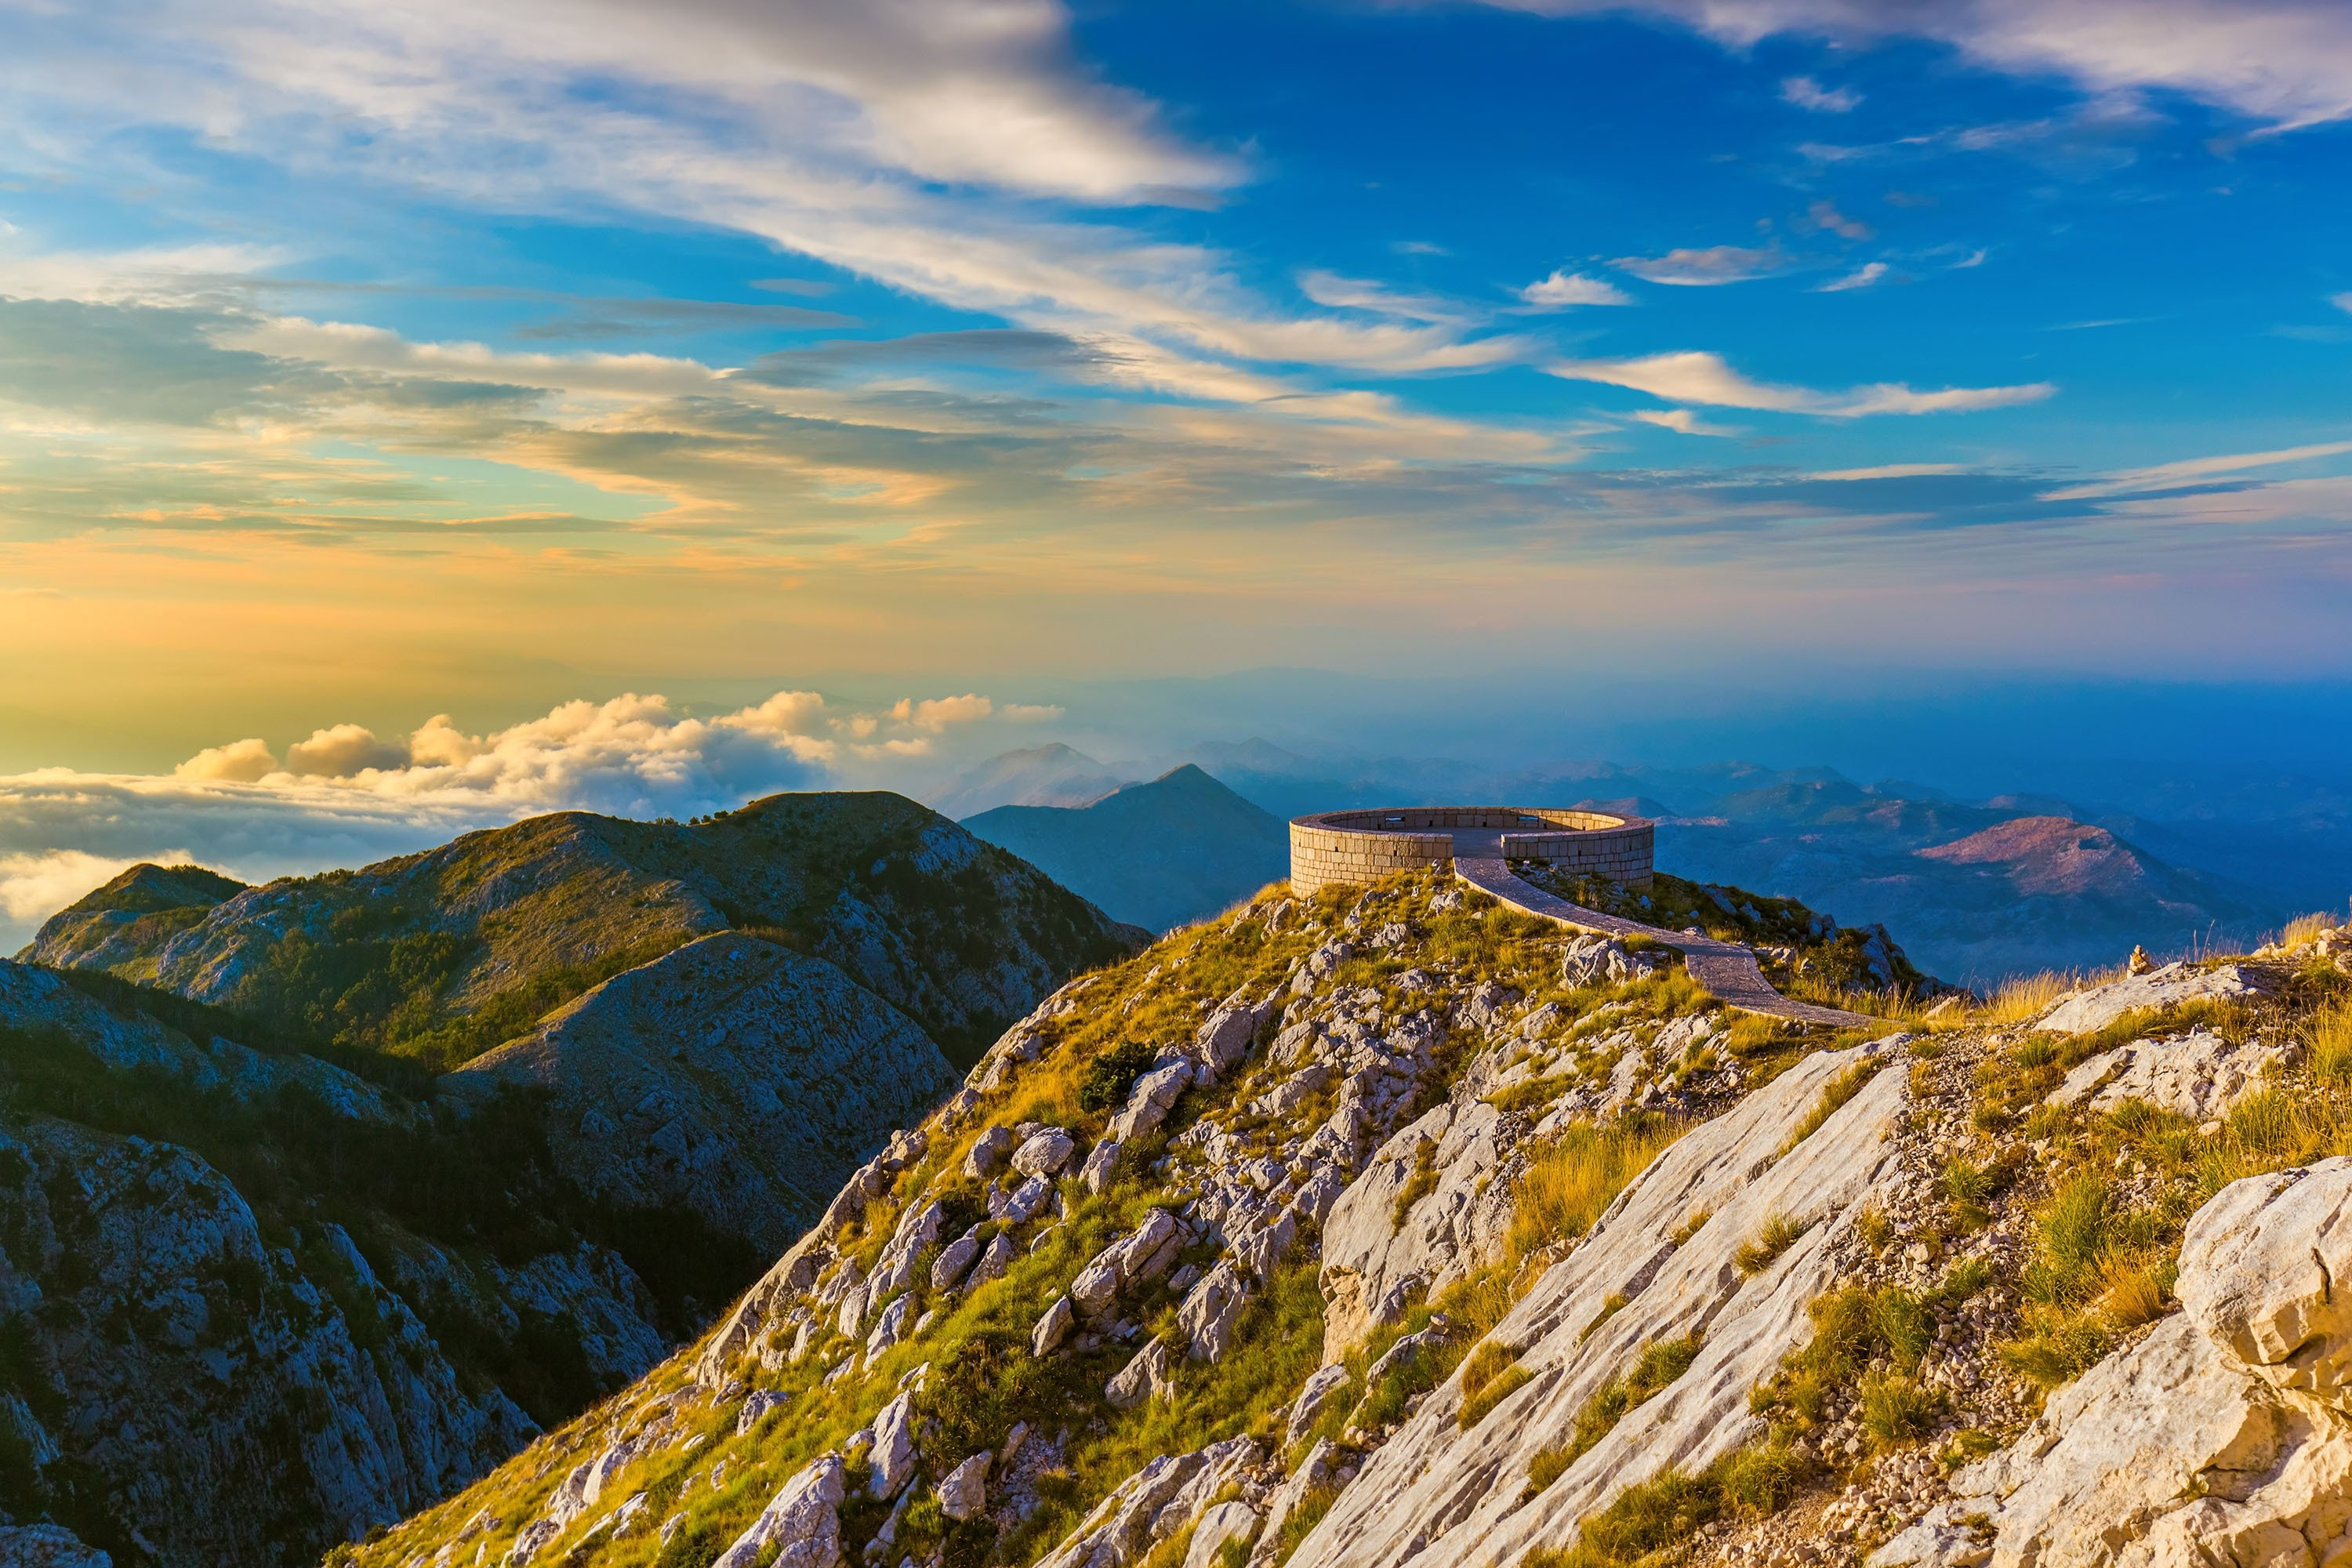 From Mount Lovcen National Park, the mountainous landscape reaches for the clouds at sunset in southwestern Montenegro. (Shutterstock Photo)